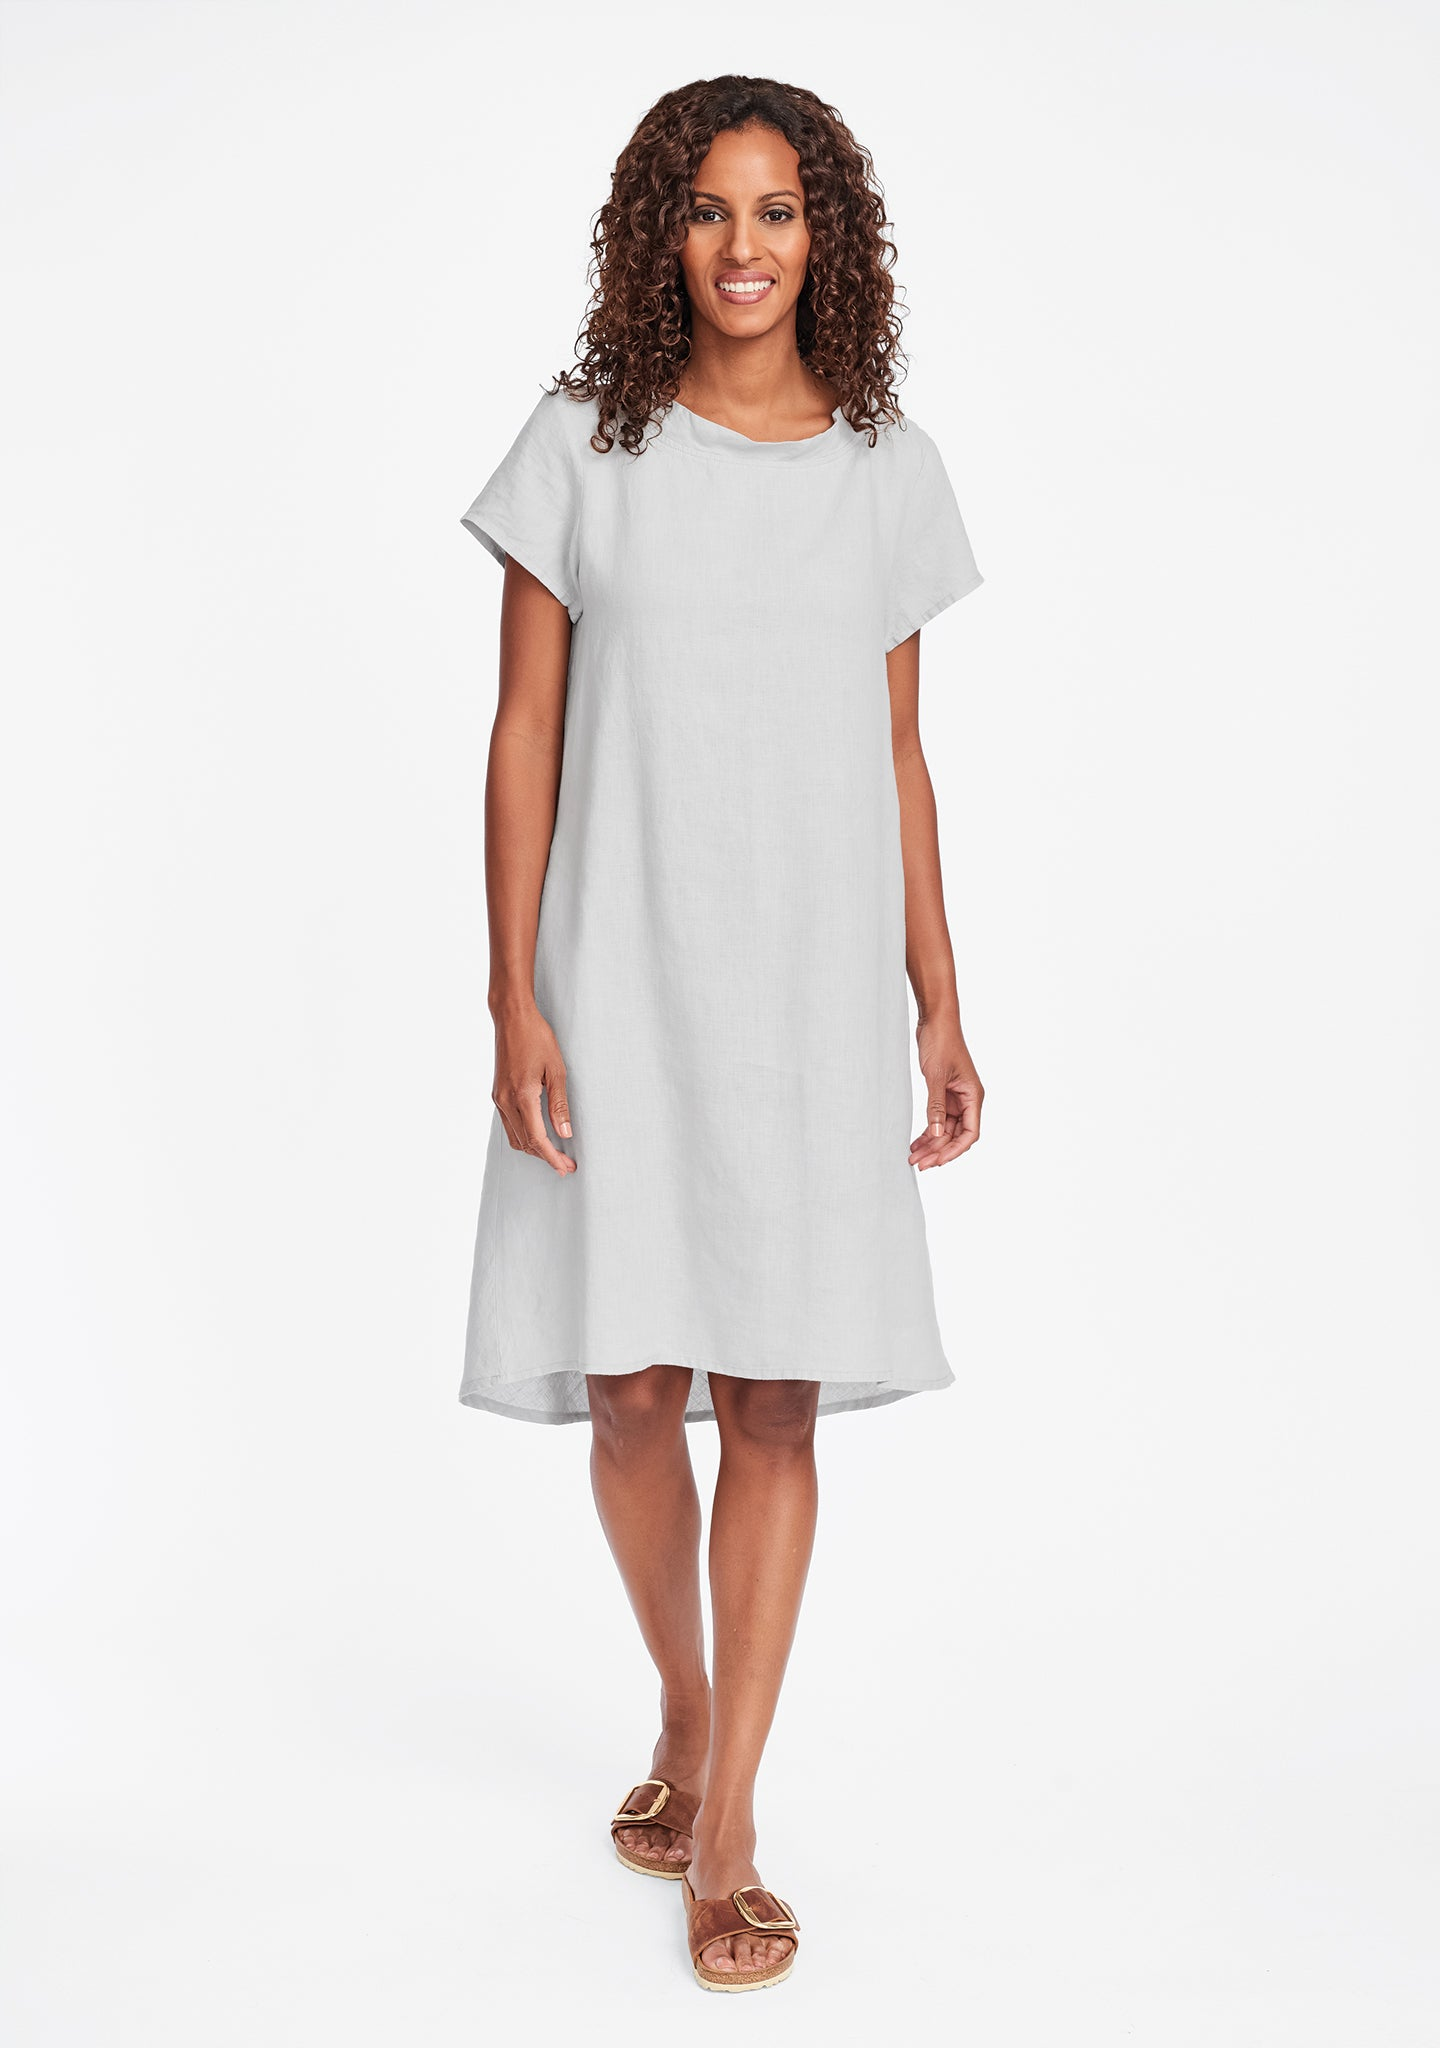 truly dreamy dress linen shift dress grey